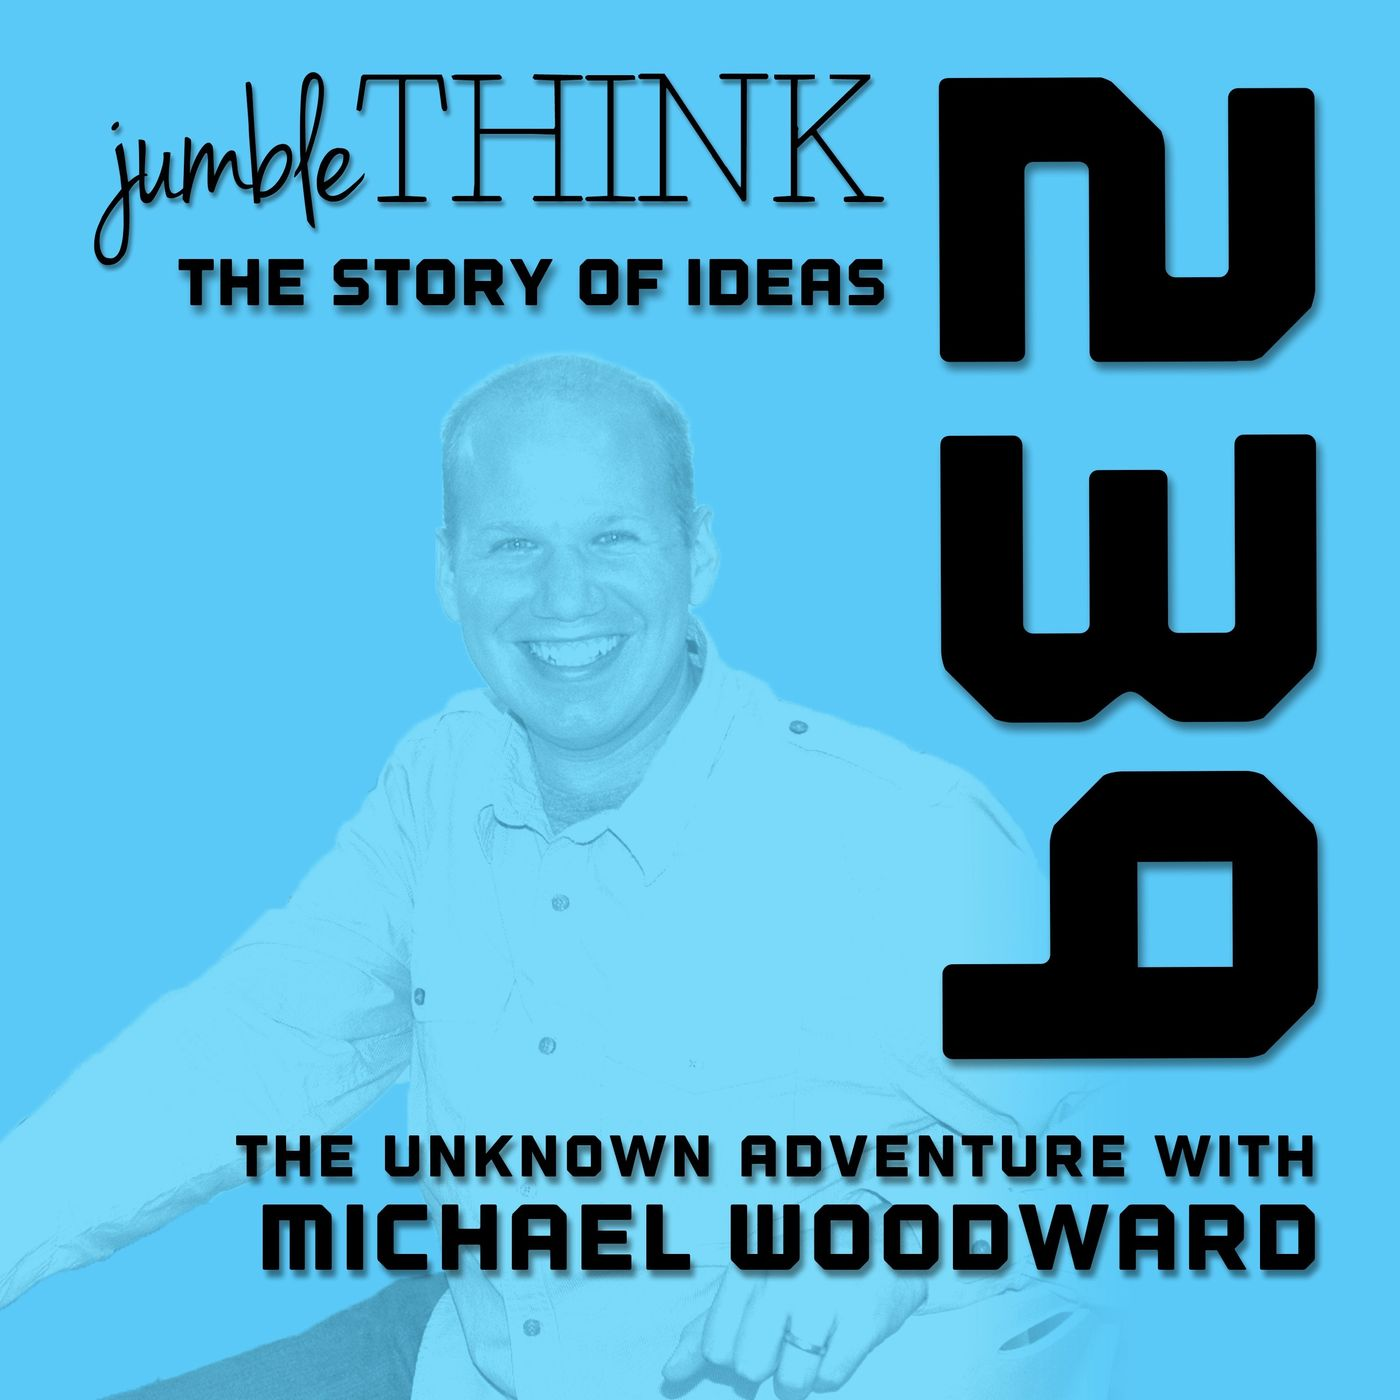 Taking the Unknown Adventure with Michael Woodward